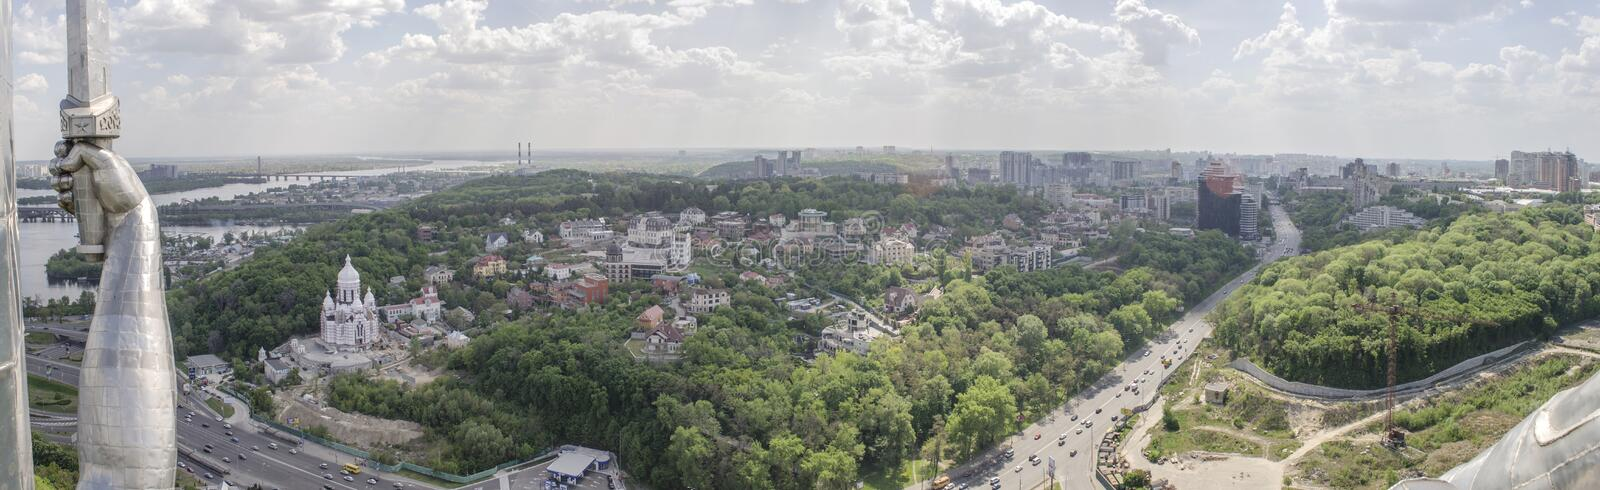 KIEV, UKRAINE - May 7, 2017: Panorama of the city from the observation deck on the monument Motherland royalty free stock image